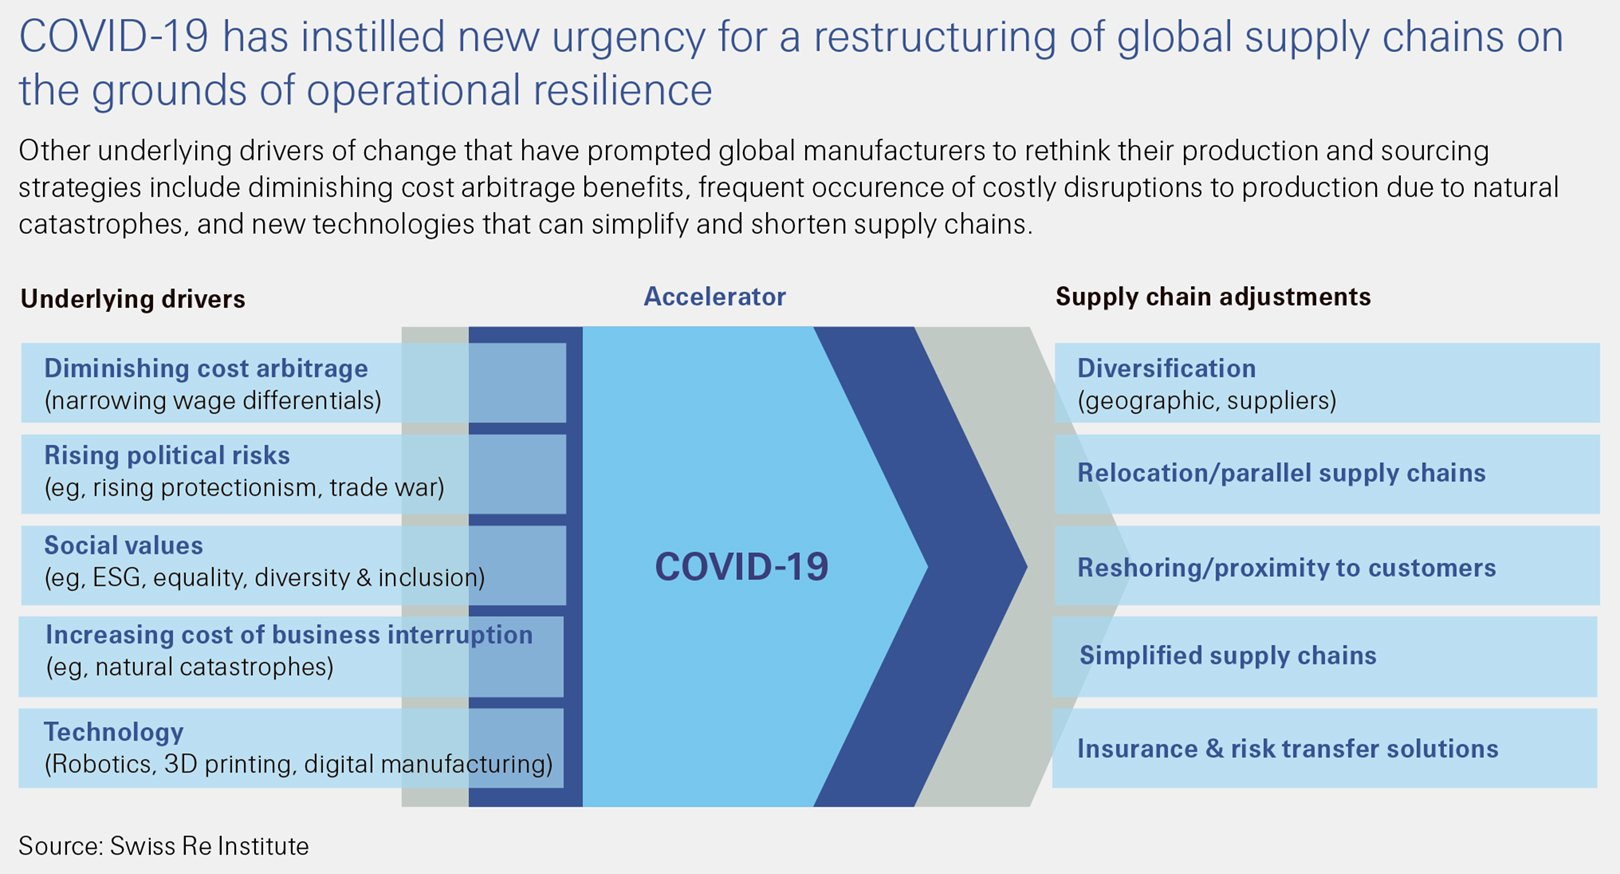 This Swiss Re Institute sigma 6/2020 figure shows: COVID-19 has instilled new urgency for retructuring of global supply chains on the grounds of operational resilience.